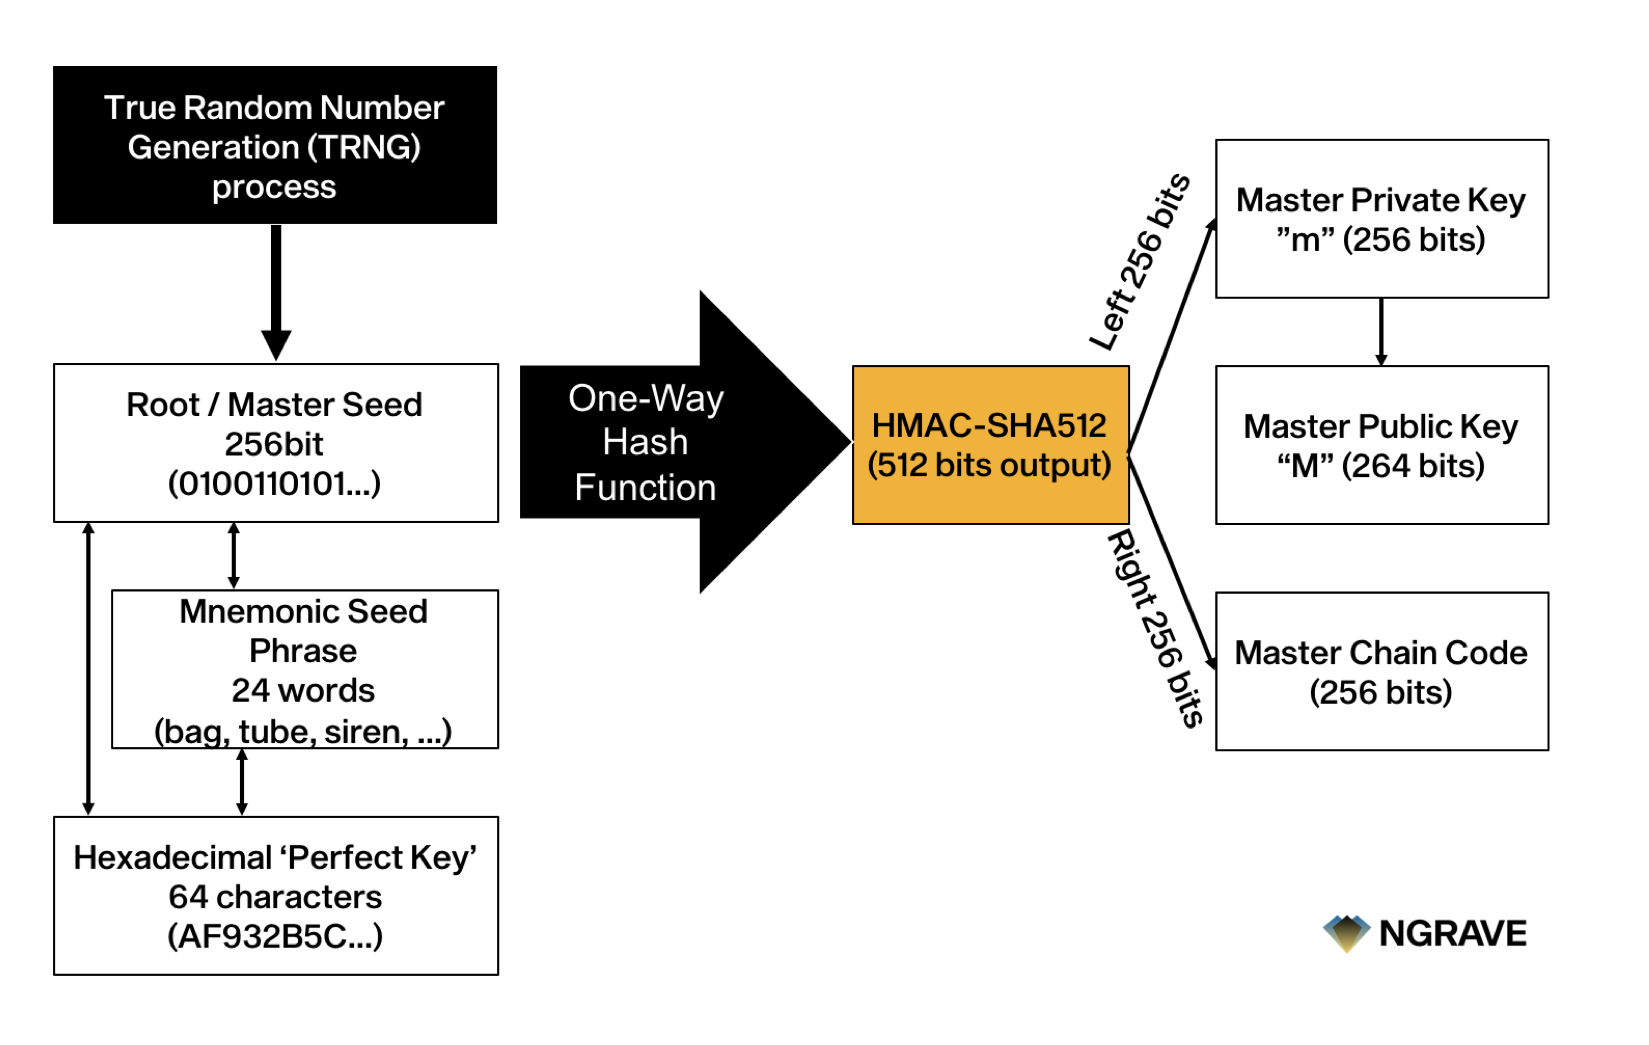 The NGRAVE Perfect Key is the hexadecimal equivalent of its relevant binary or mnemonic word version of the master seed.